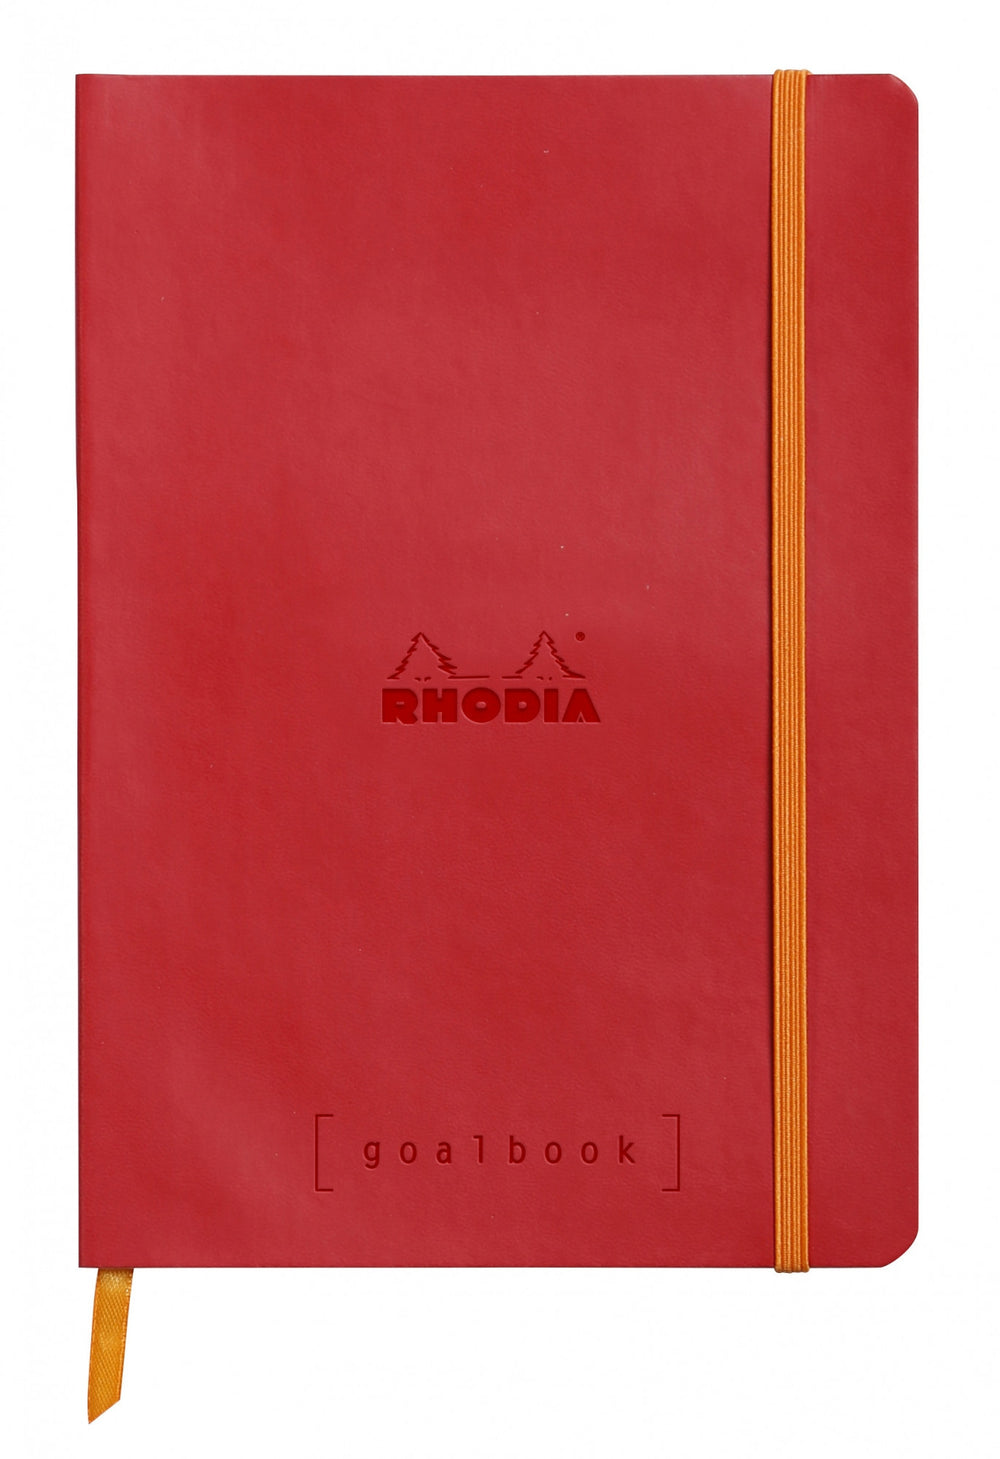 Rhodia Goalbook Poppy